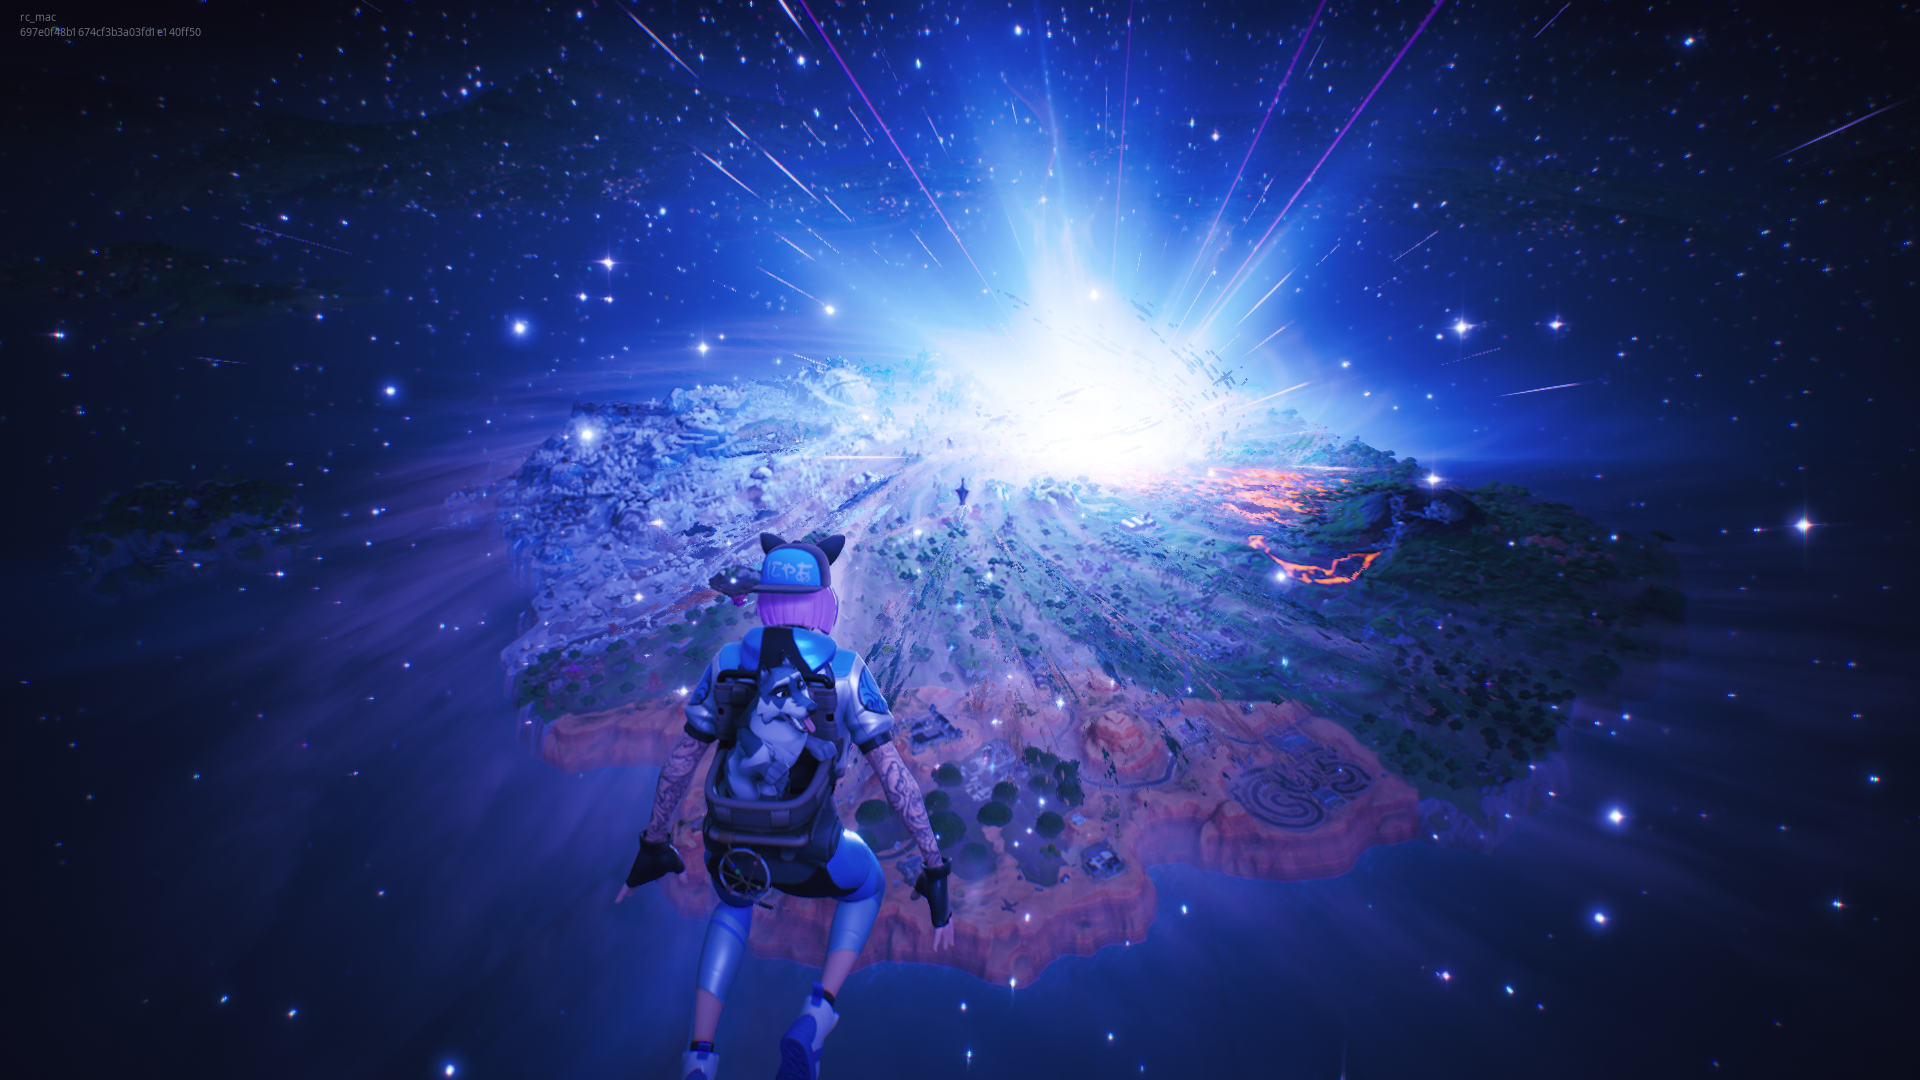 Fortnite's Season 10 Event Seems To Have Ended Its World